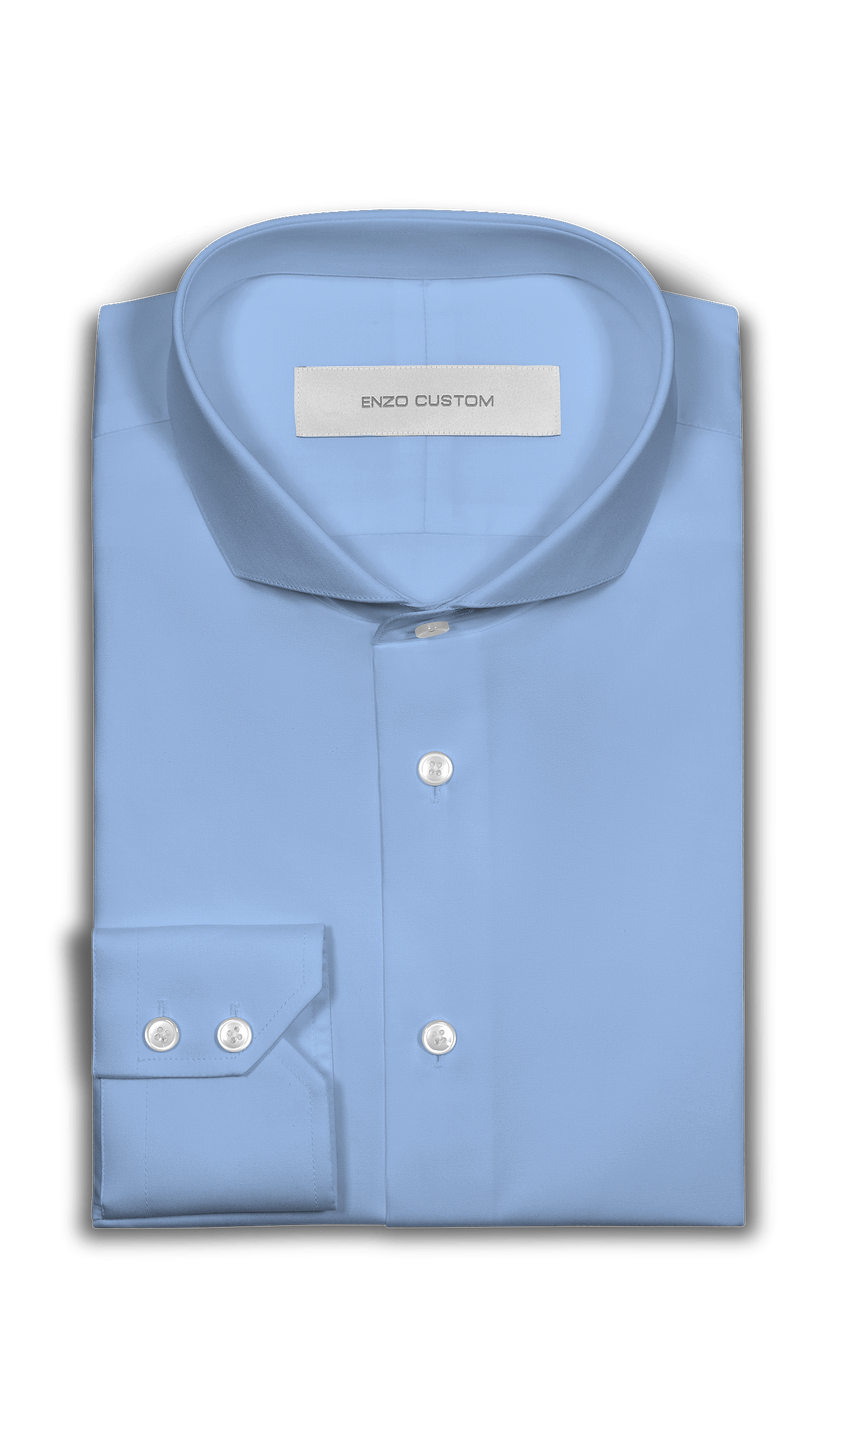 Light Blue Bamboo Blend Dress Shirt - Enzo Custom